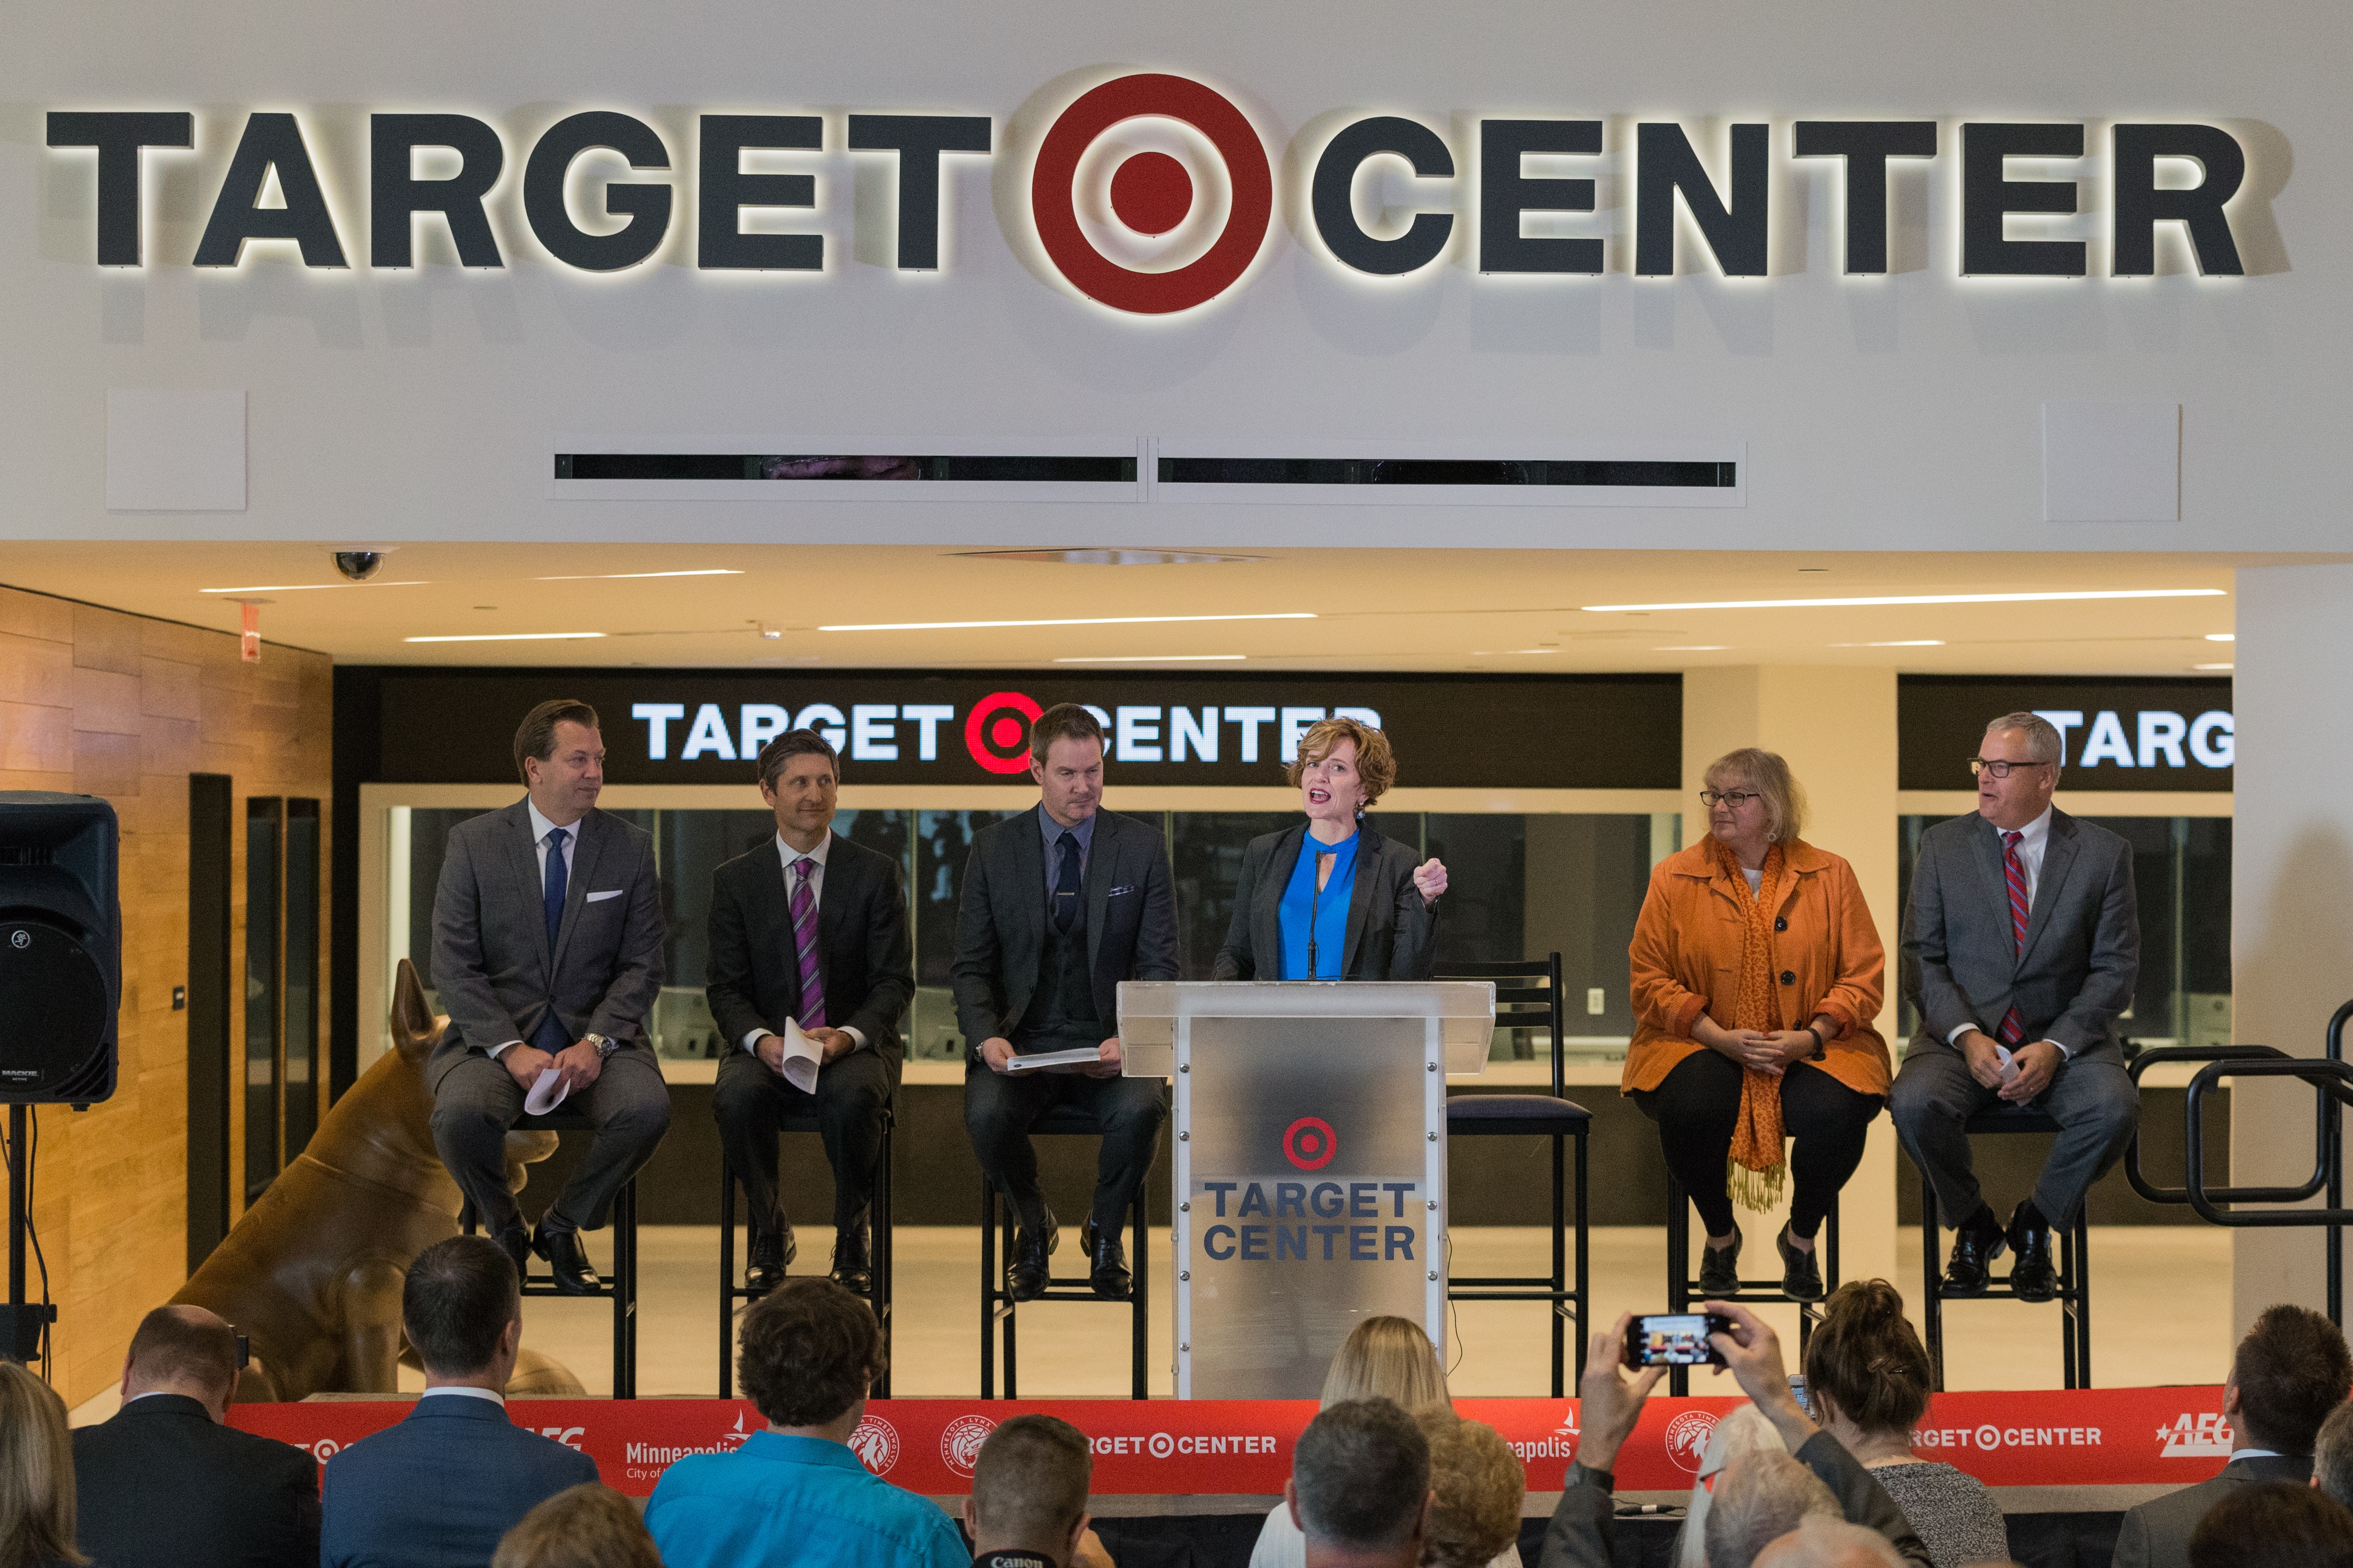 Gallery: Target Center Ribbon Cutting Ceremony